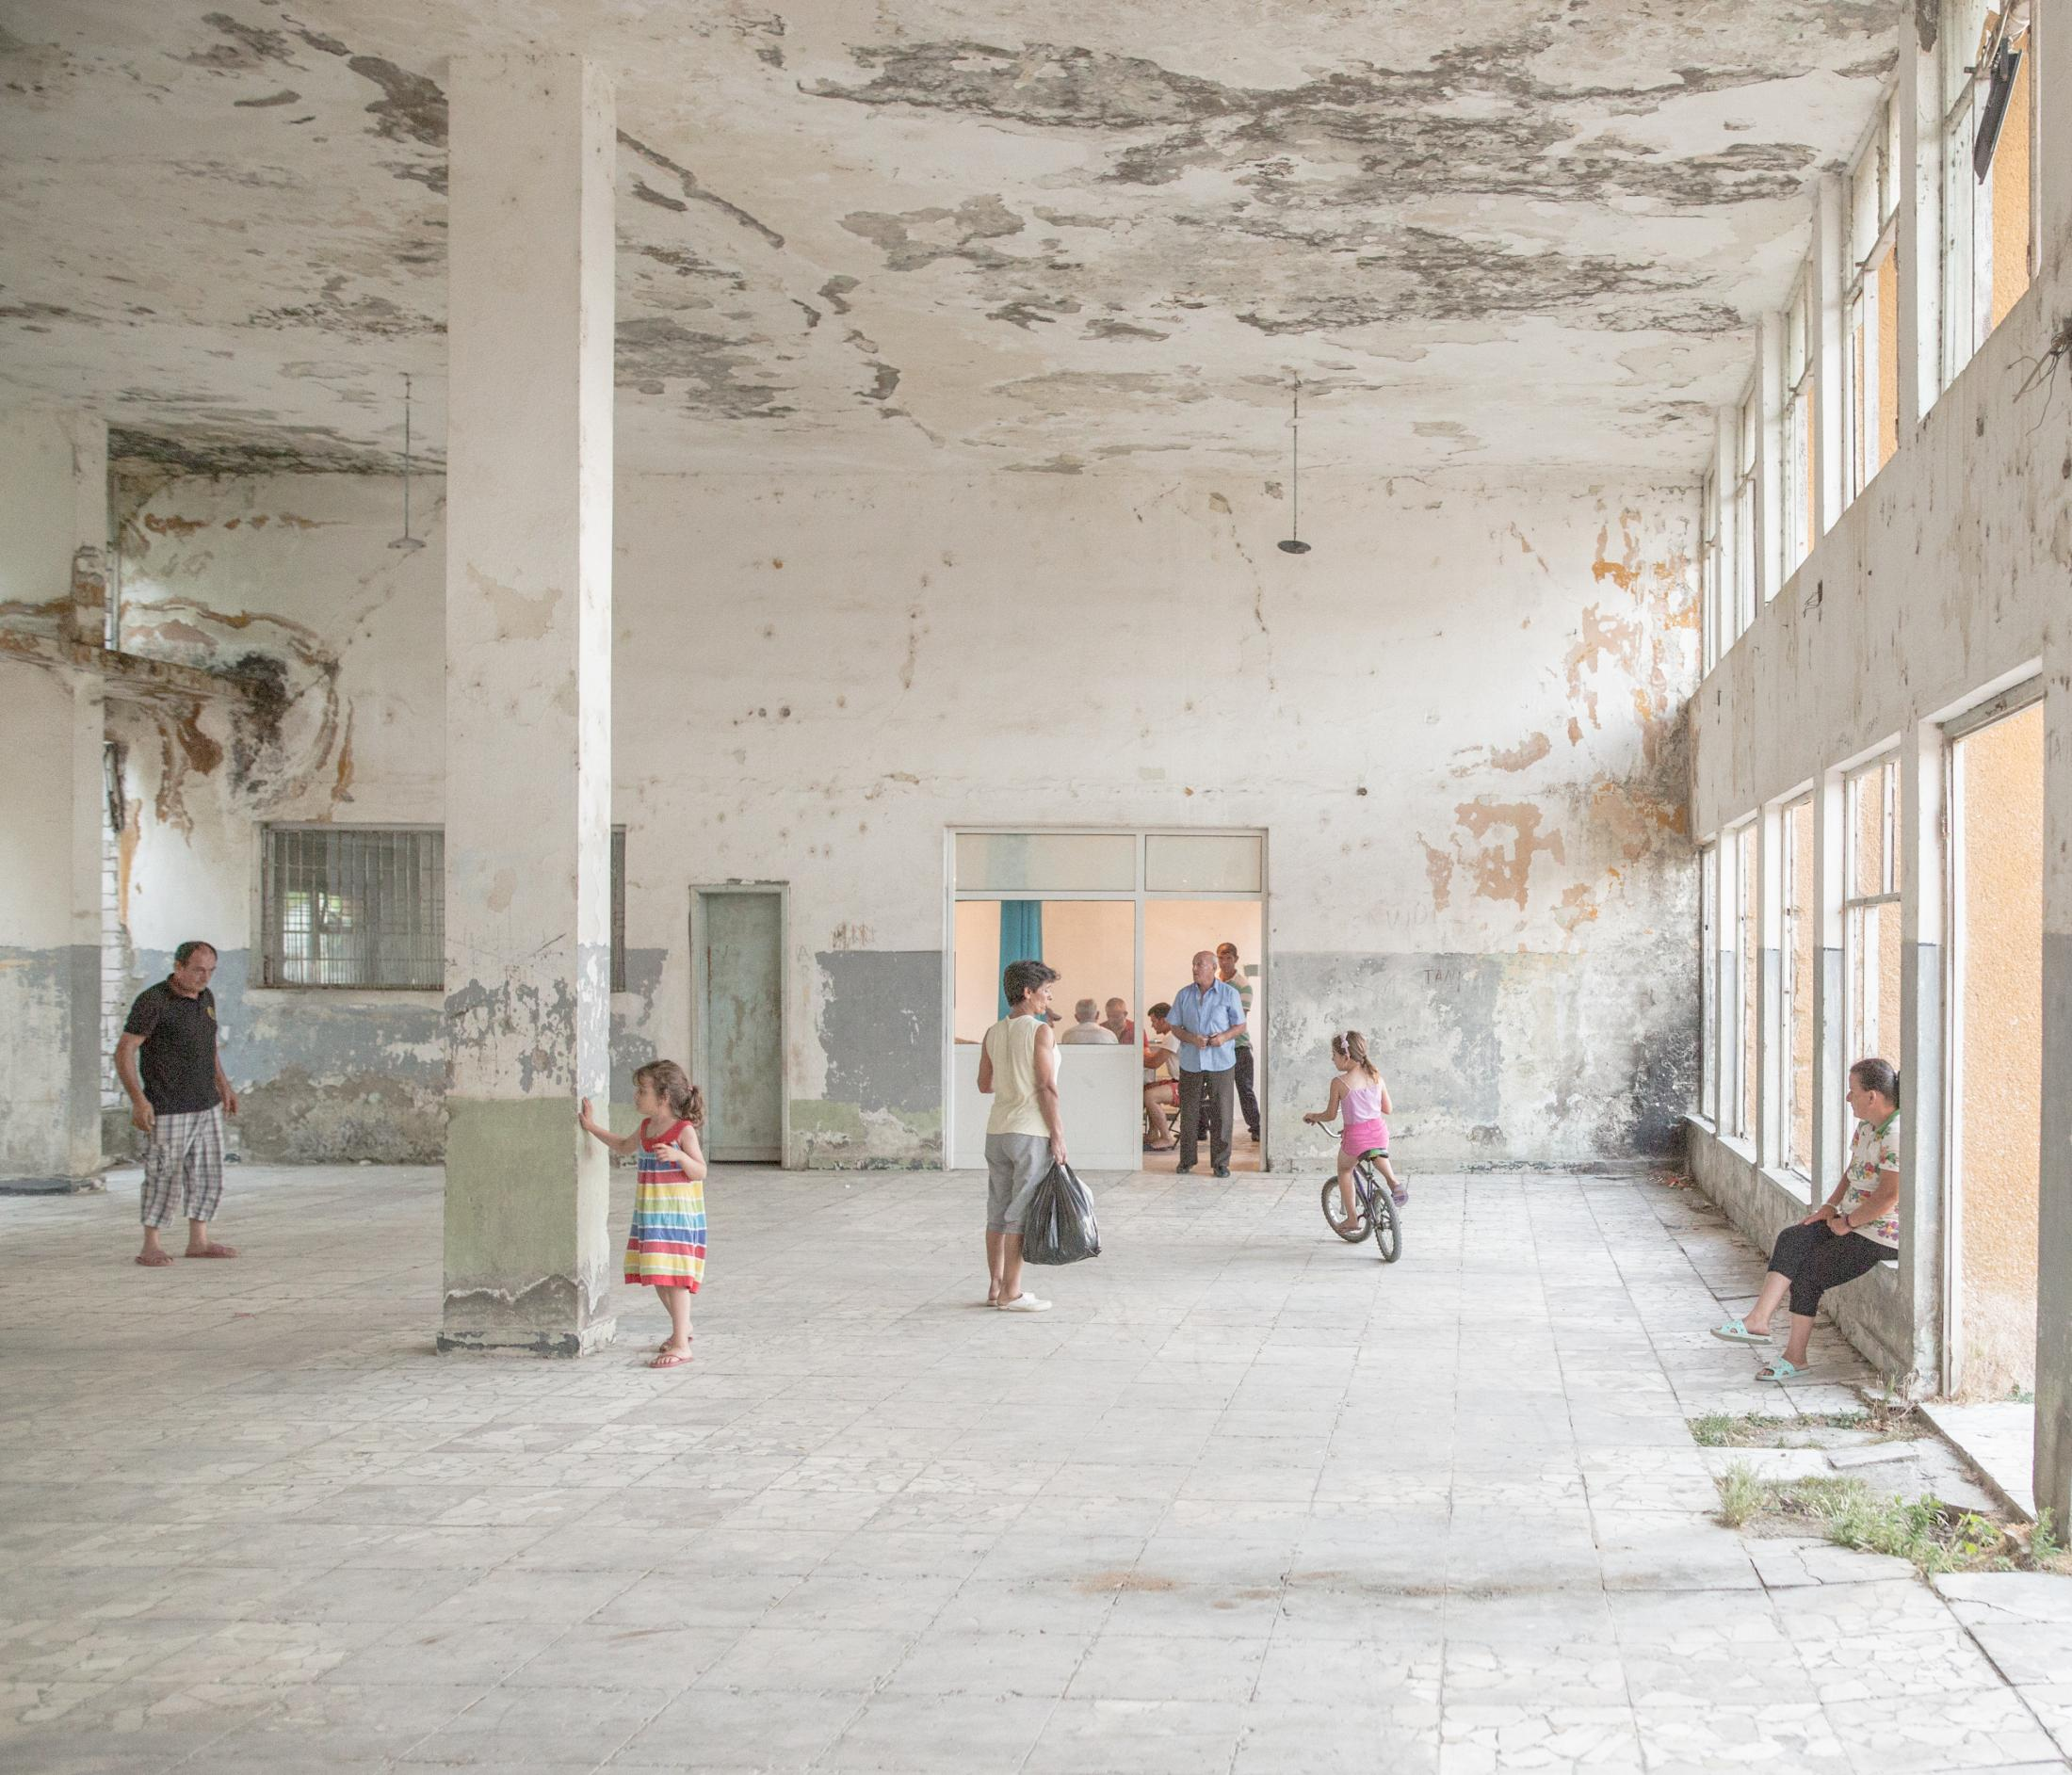 The abandoned village station has become a leisure center for Ballsh's residents from Southern Albania. July 2020.